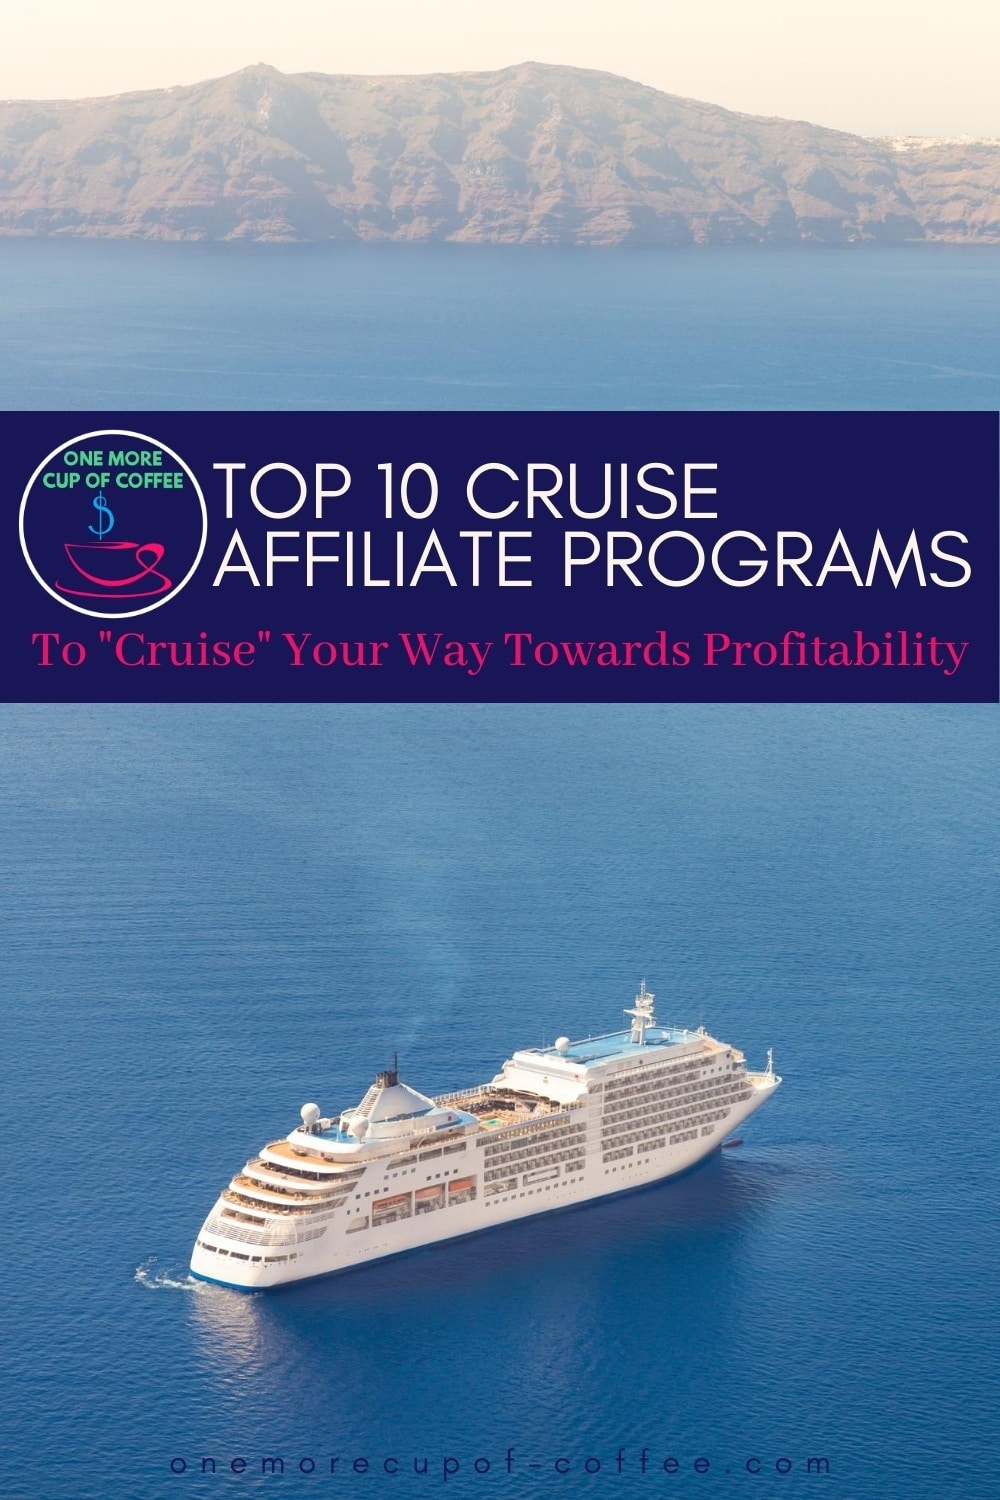 """cruise ship sailing on blue water with visible mountain range at a distance, with text overlay """"Top 10 Cruise Affiliate Programs To _Cruise_ Your Way Towards Profitability"""""""